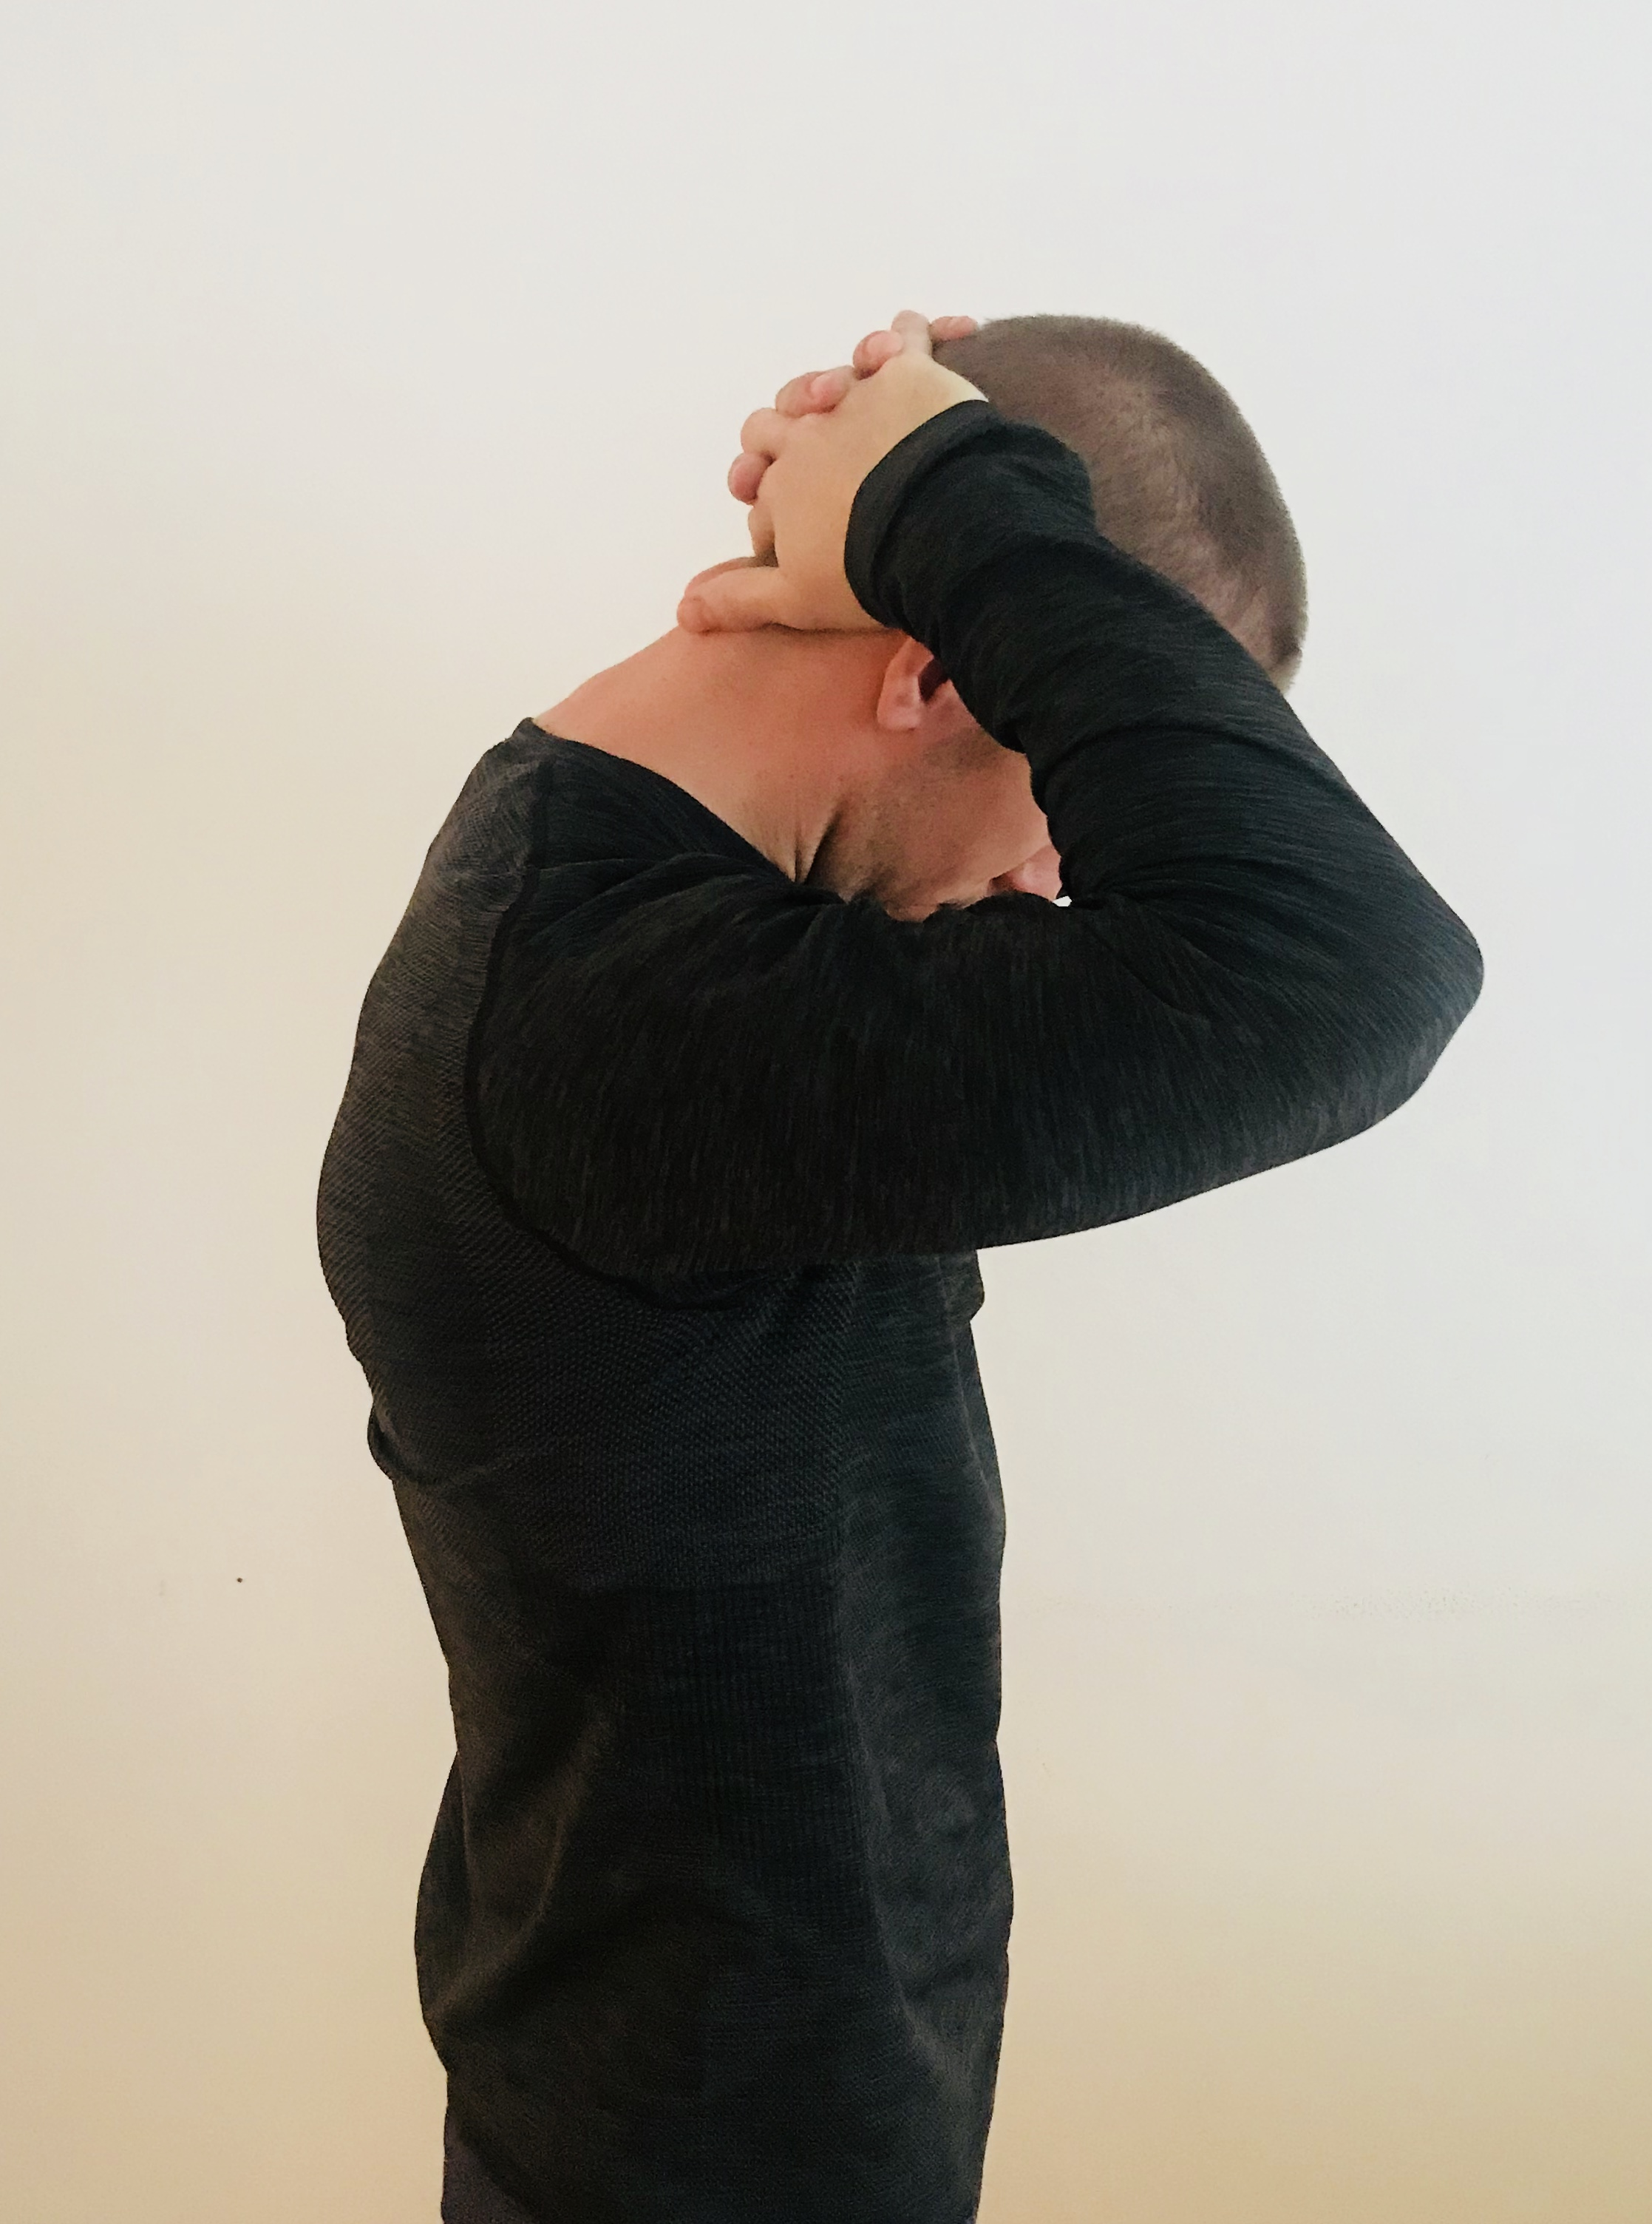 The chin to chest stretch is perfect for relieving the tension in your neck to help your headaches.